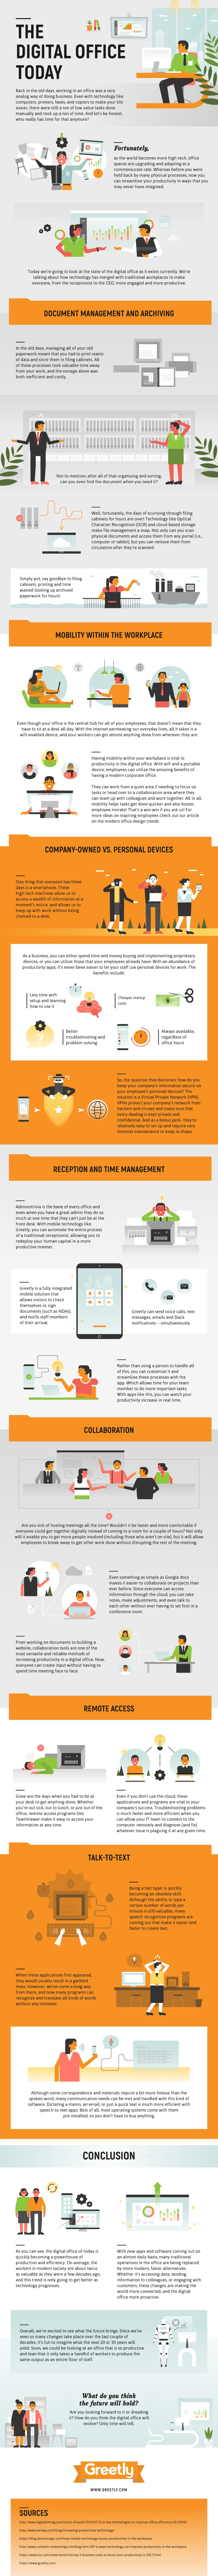 The Digital Office Today [Infographic] | High Touch Technologies